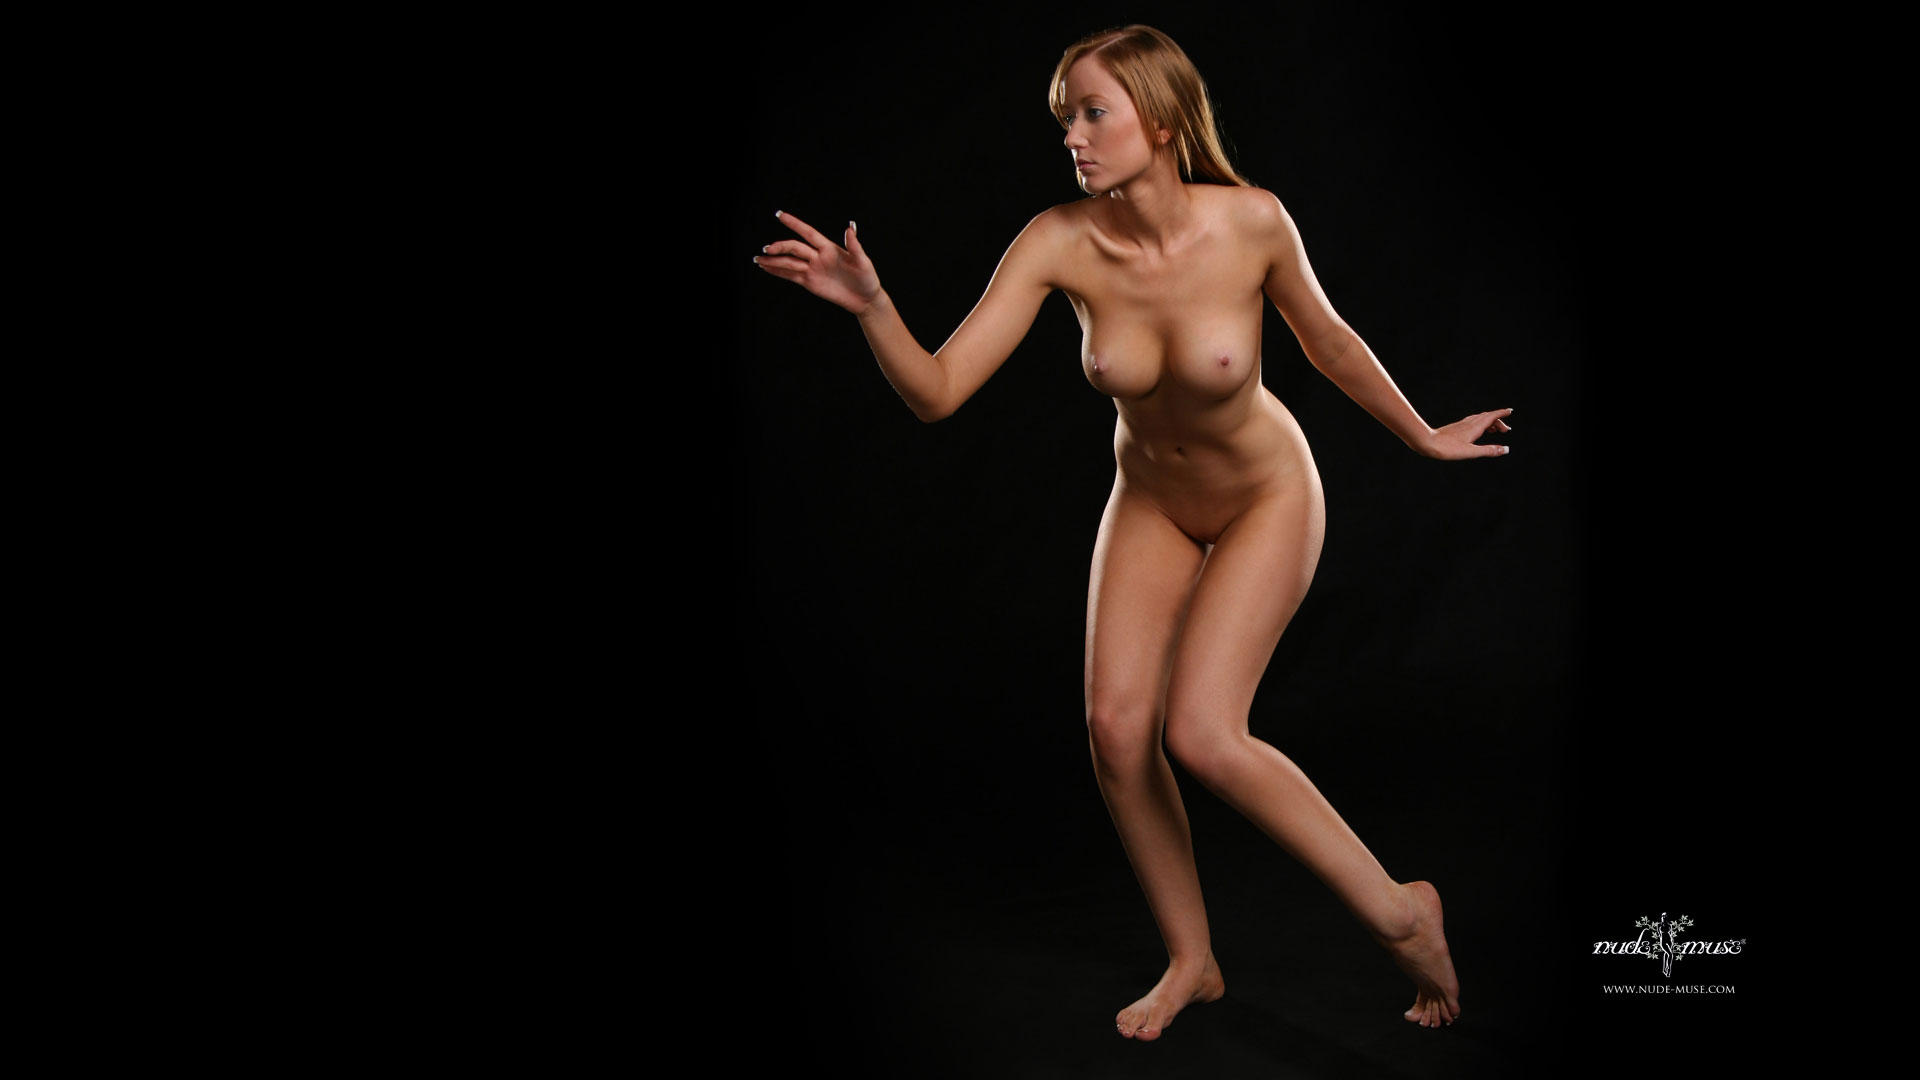 wallpaper Nude picture